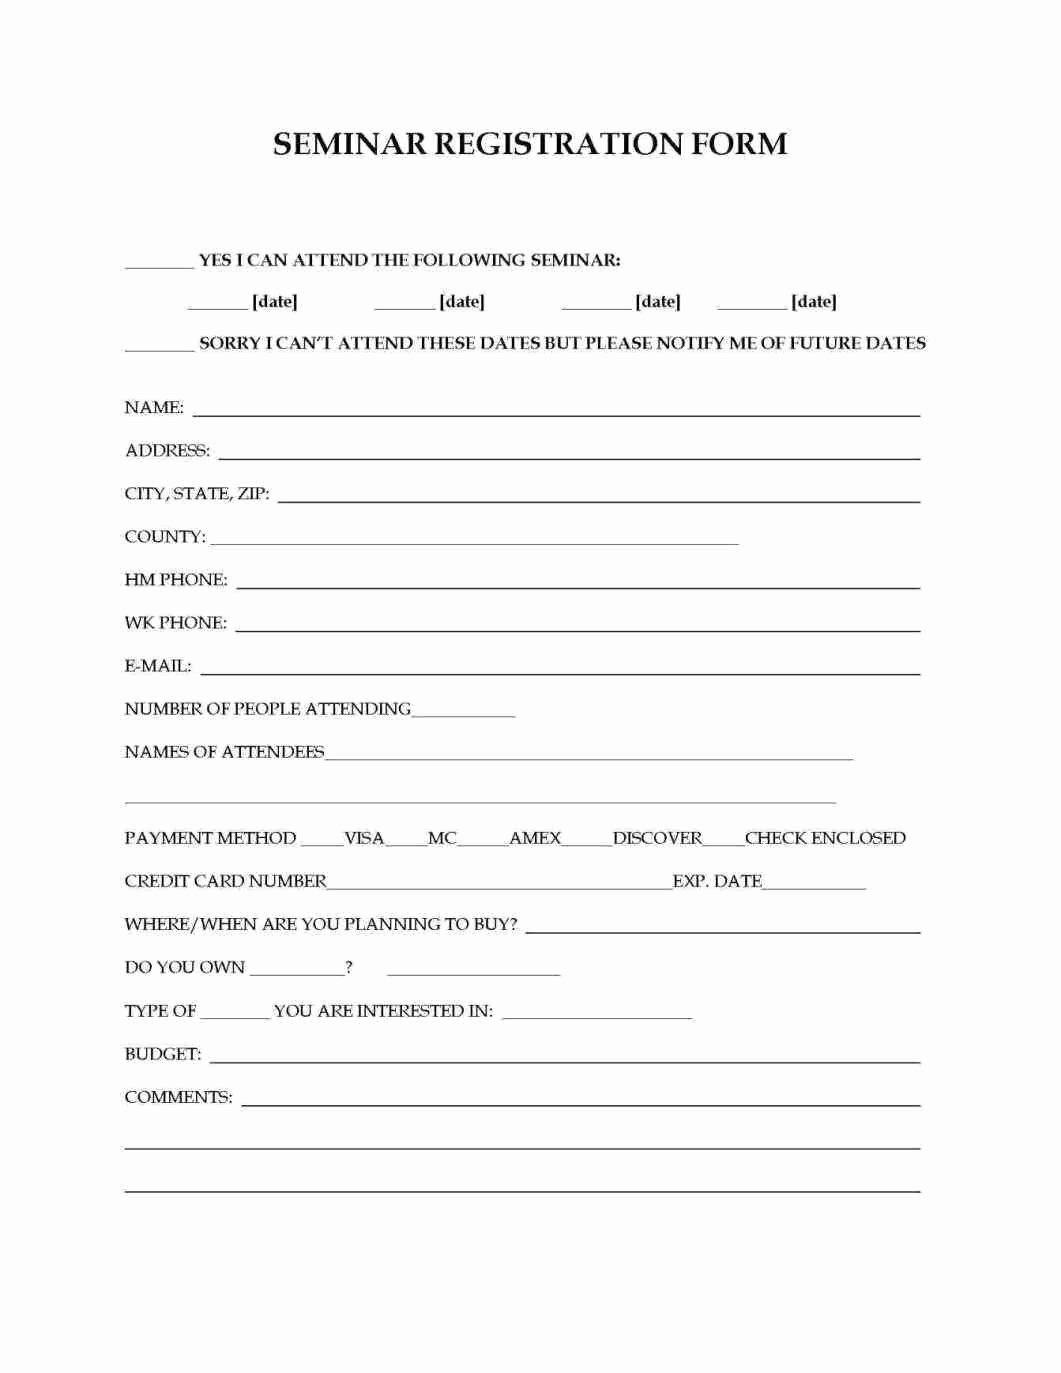 Contest Entry form Template Luxury Contest Entry form Template Word